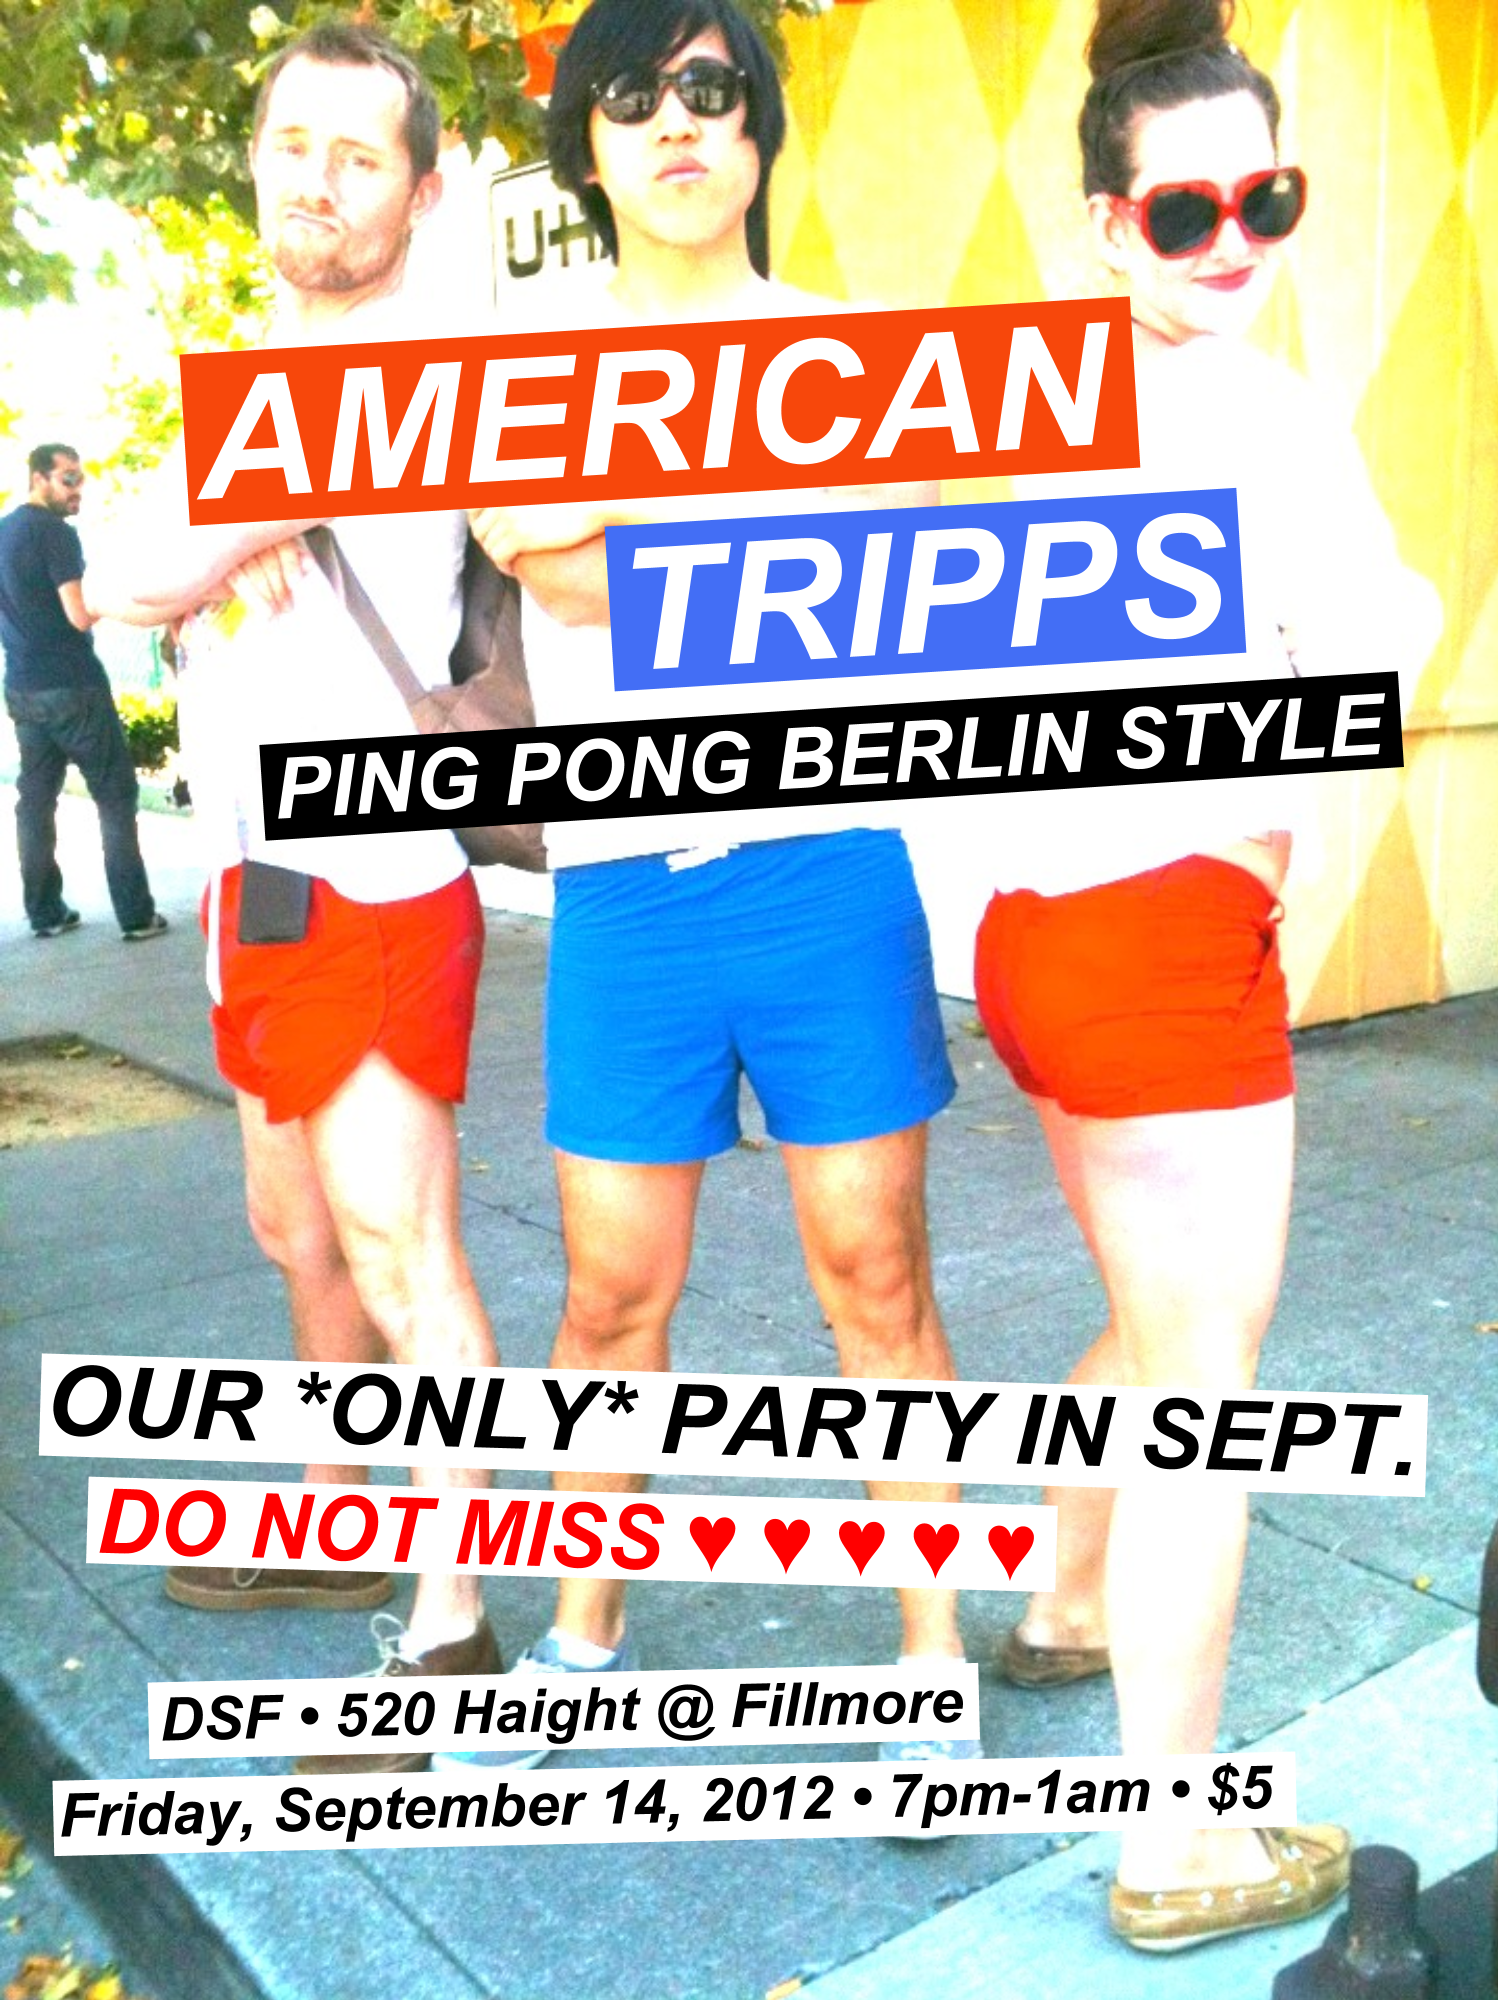 berlin style ping pong tonight in the lower haight mission mission. Black Bedroom Furniture Sets. Home Design Ideas